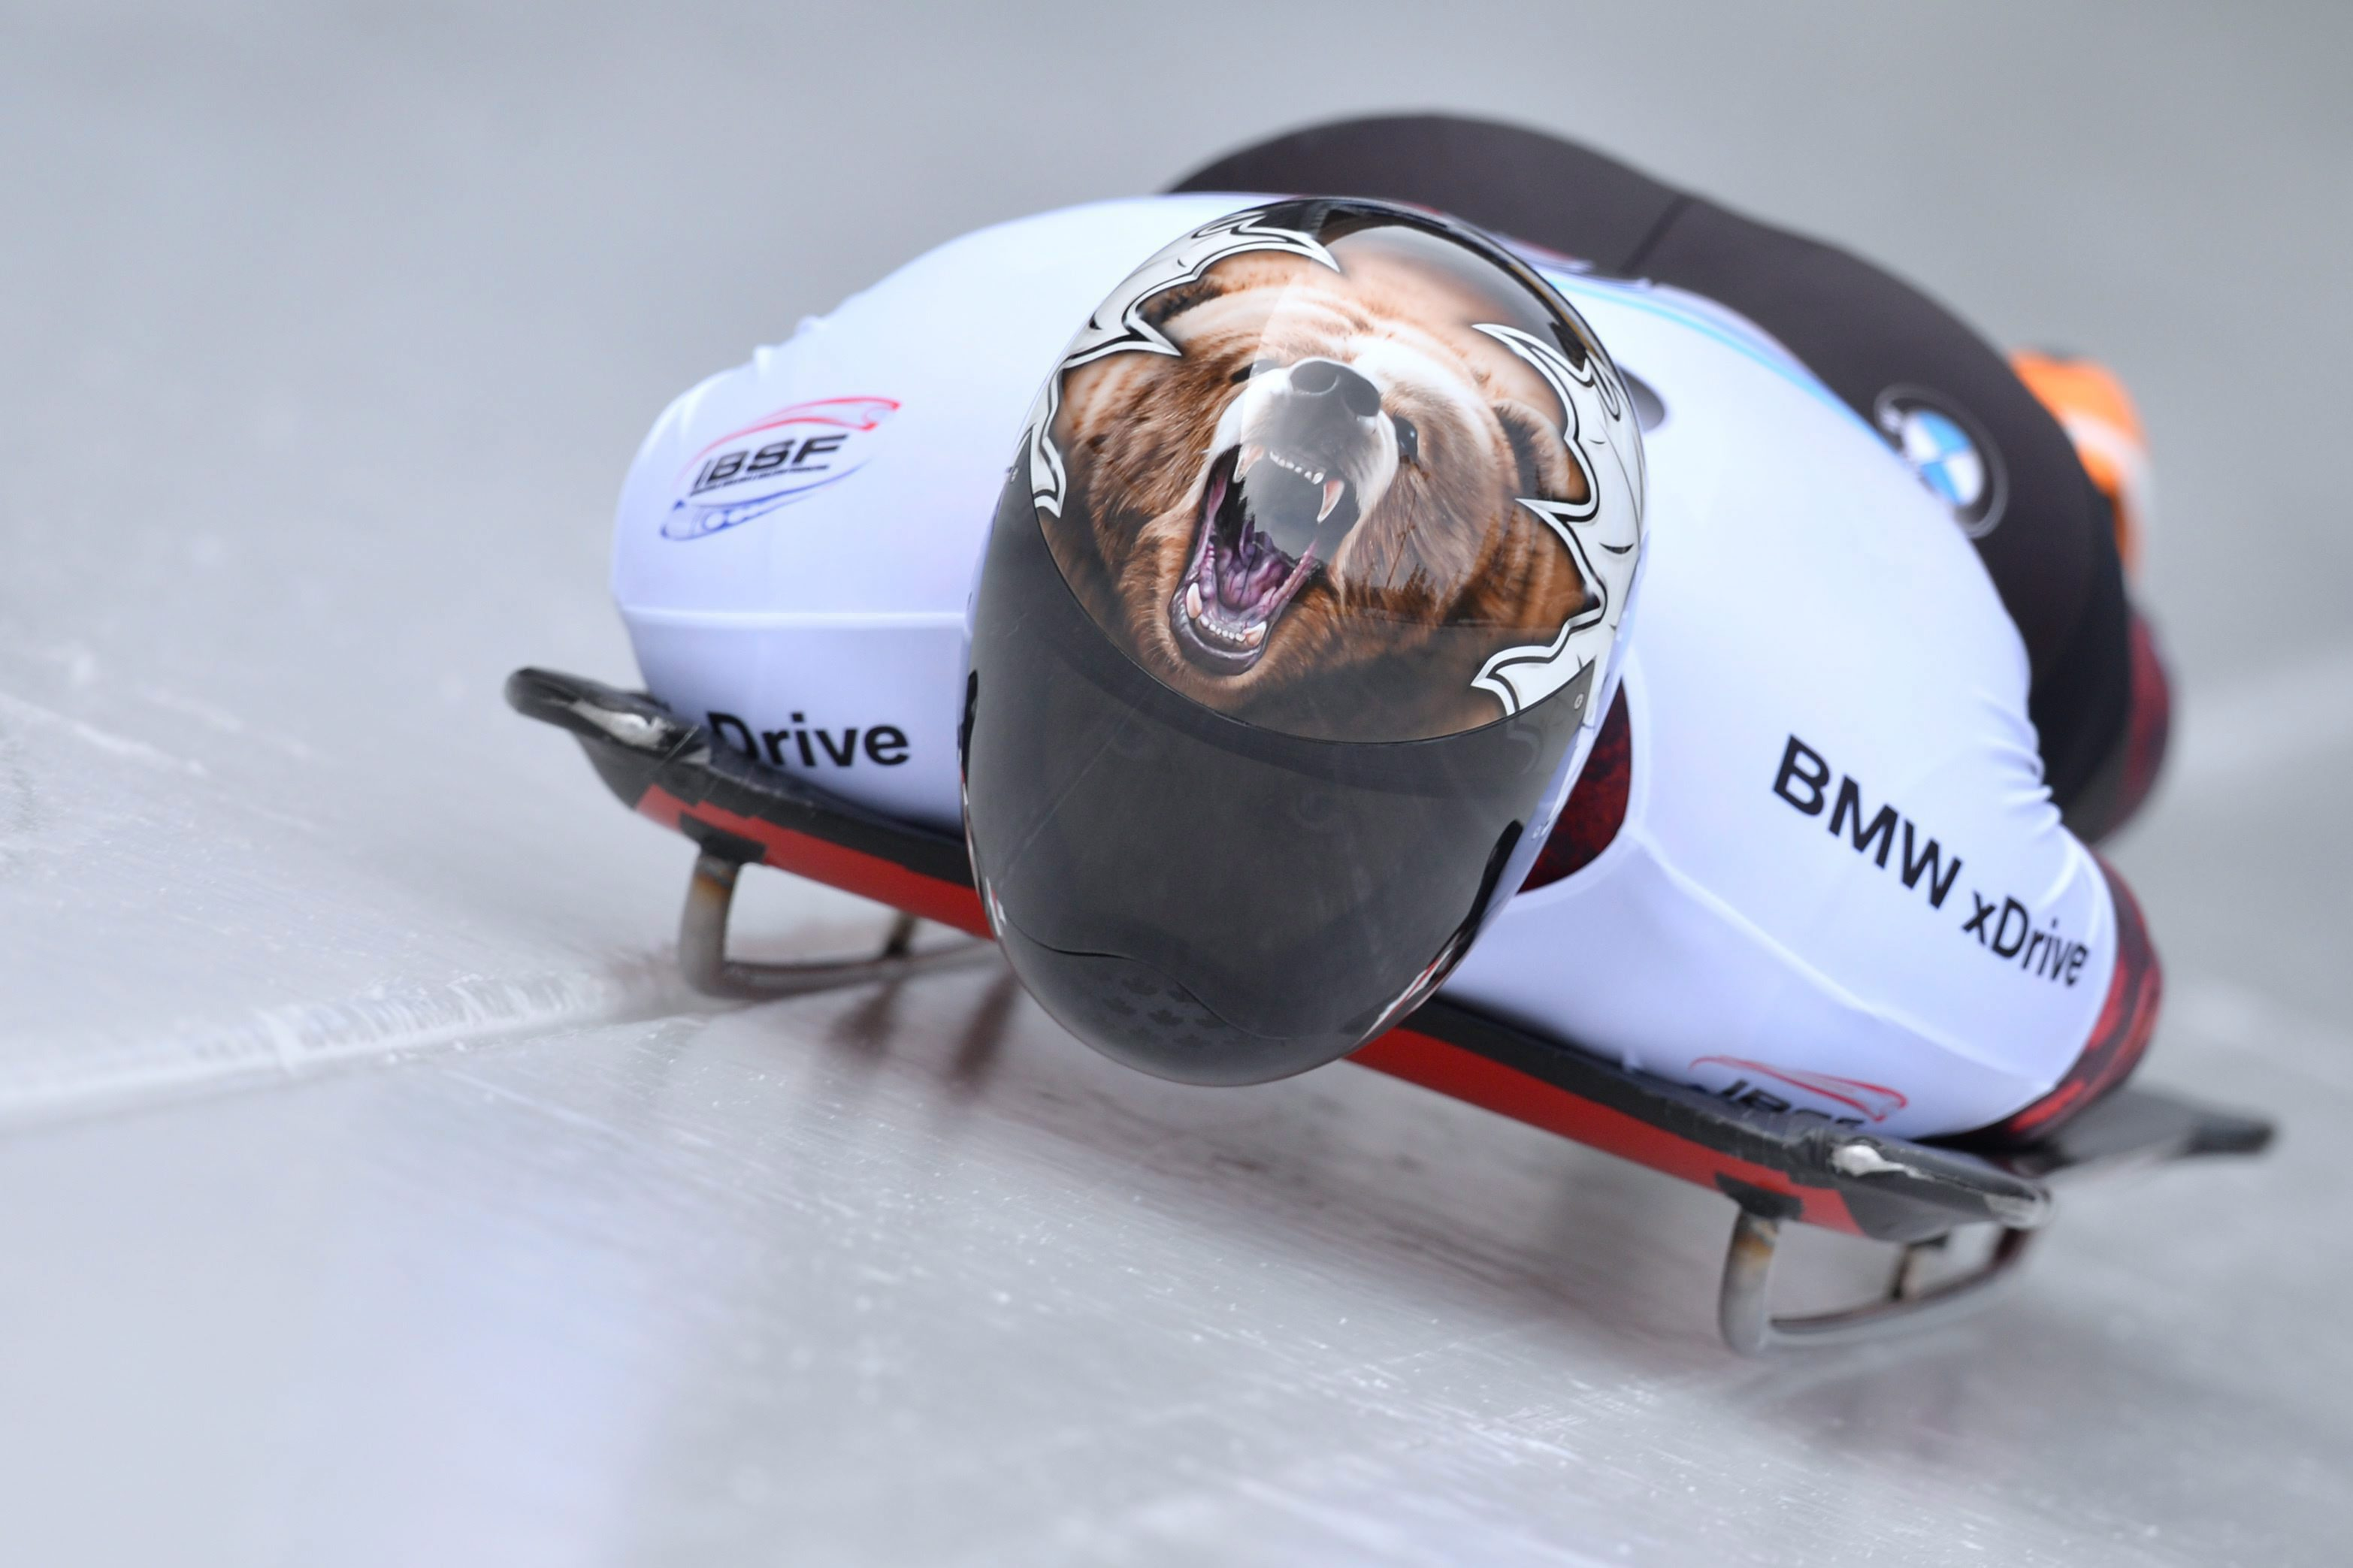 Dave Greszczyszyn of Canada speeds down the track during his first run of the men's Skeleton World Cup race in Koenigssee, southern Germany, Saturday, Feb. 27, 2016. (AP Photo/Kerstin Joensson)